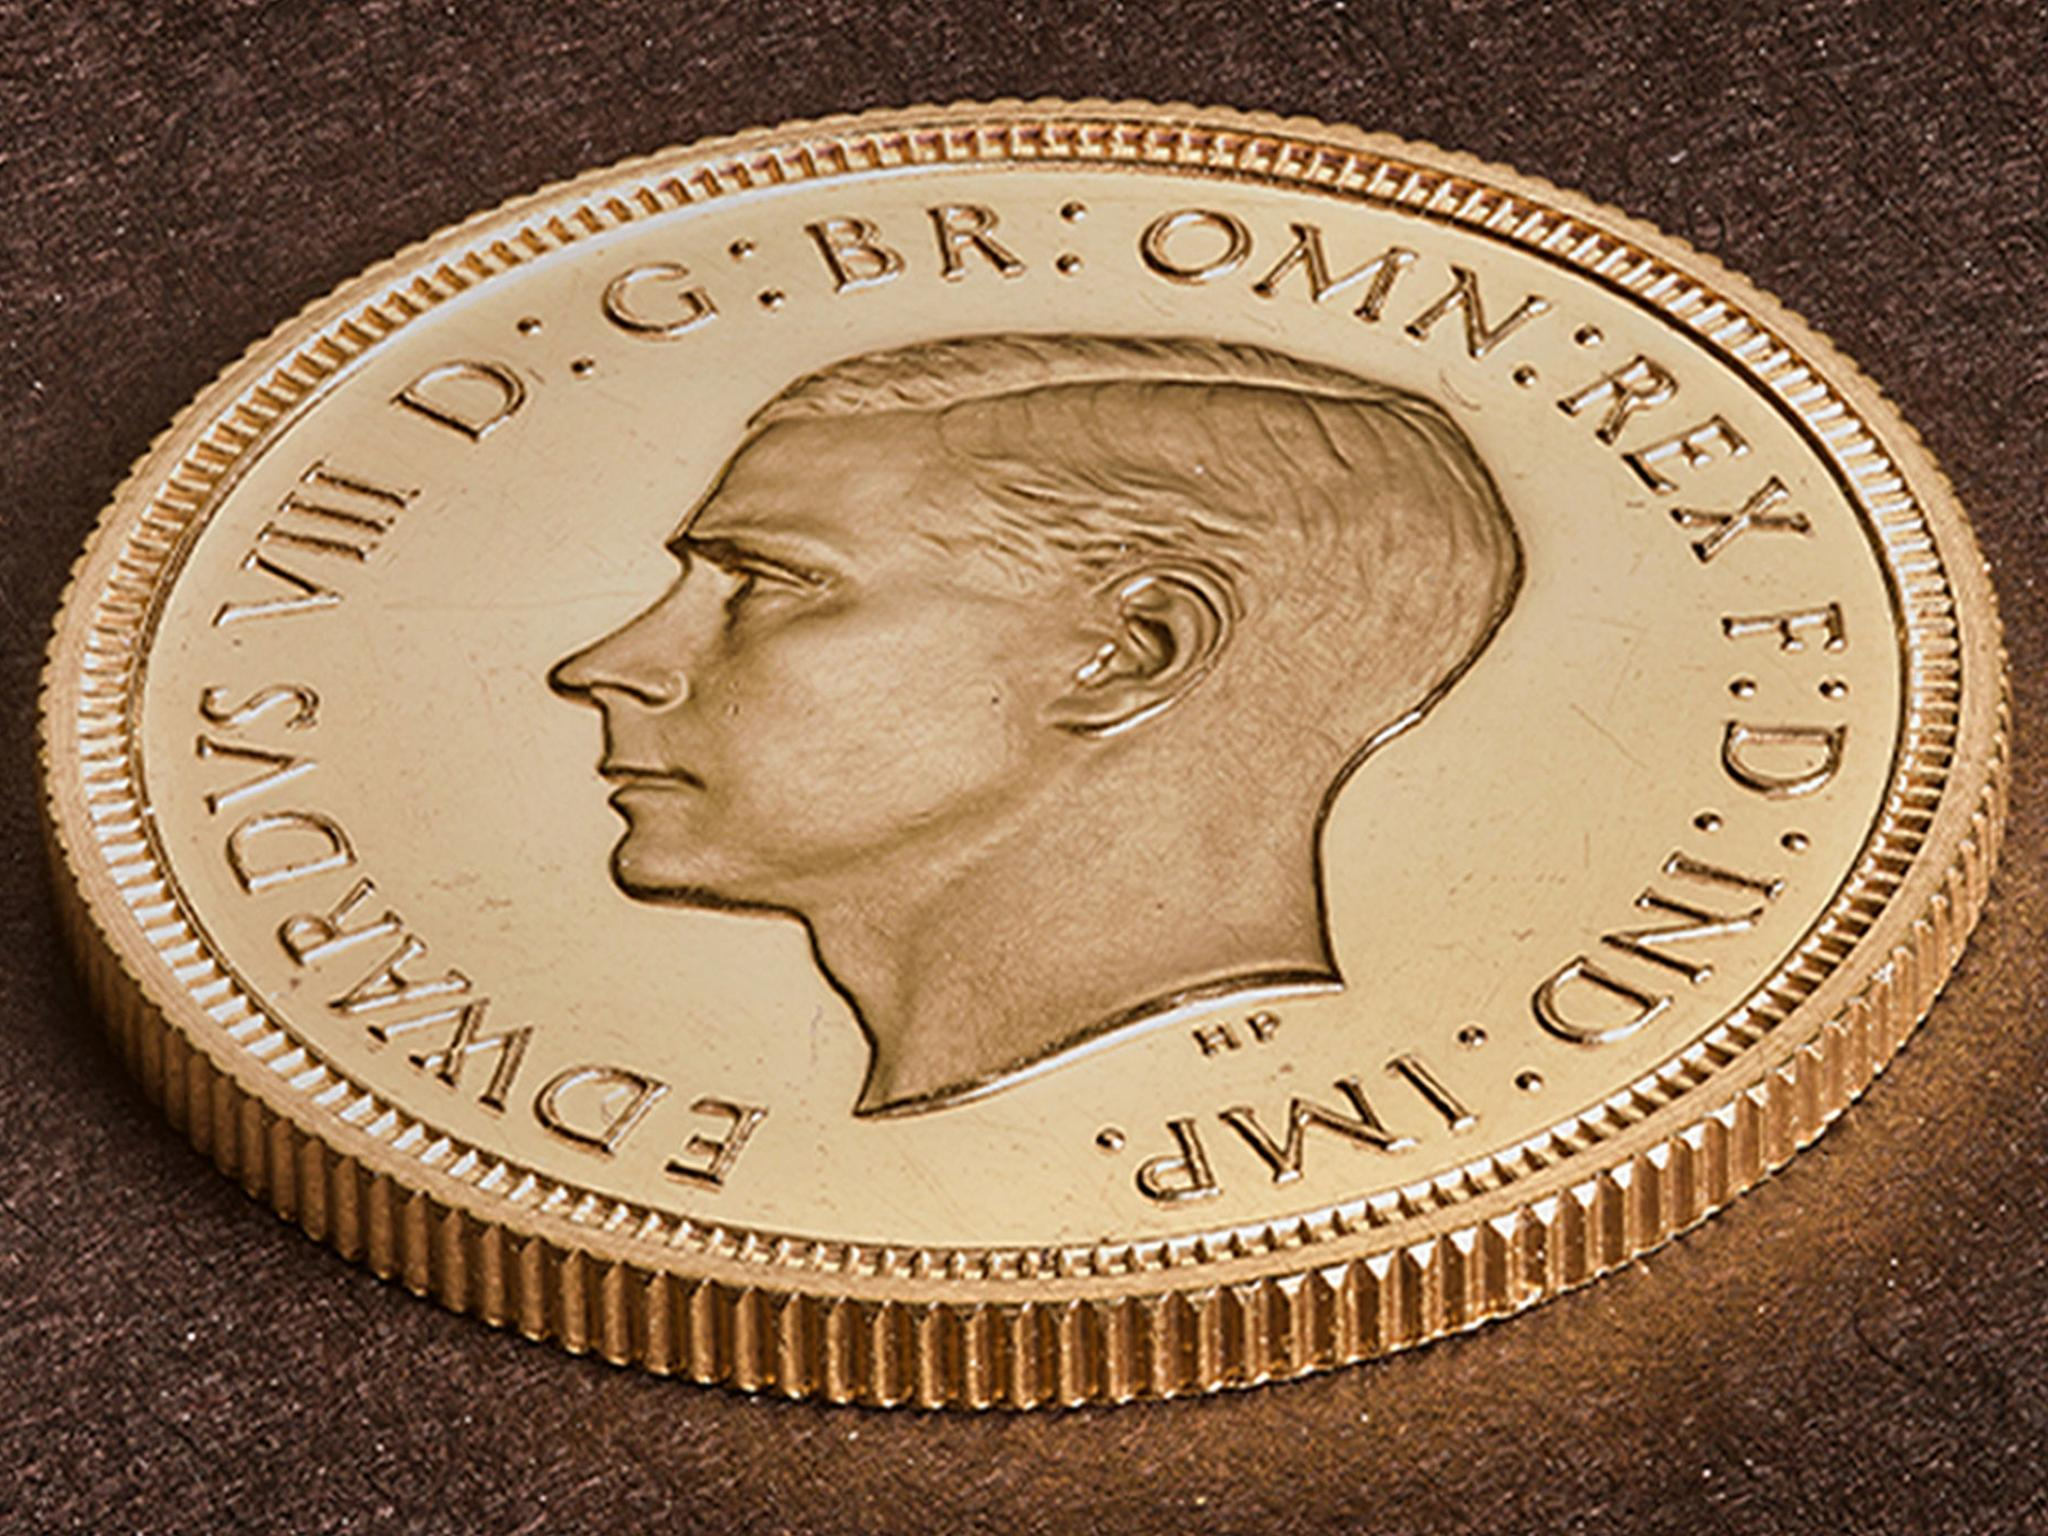 Rare Edward VIII coin sells for record £1m